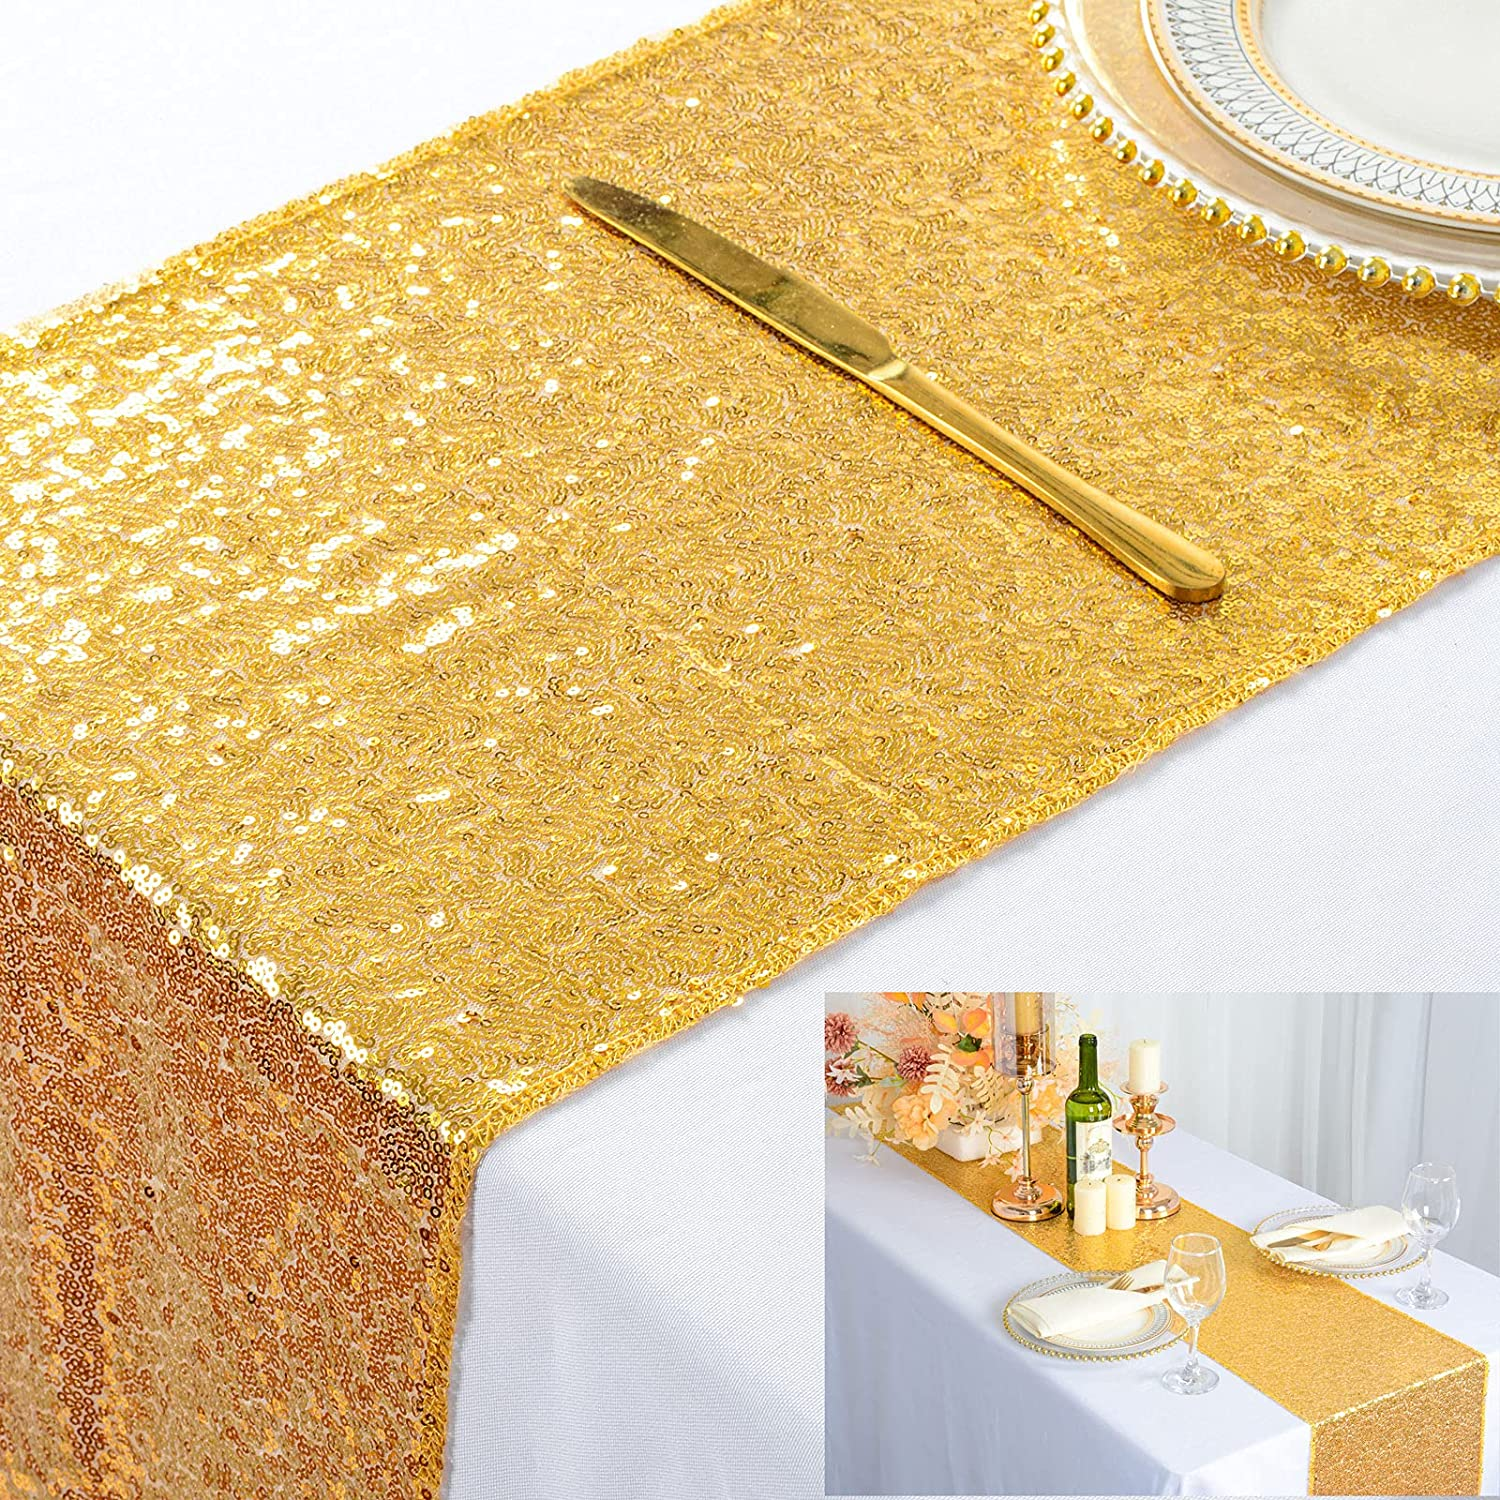 Gold Table Runners Pack of 12x72-Inch Max 40% OFF Shiny Cover price 10